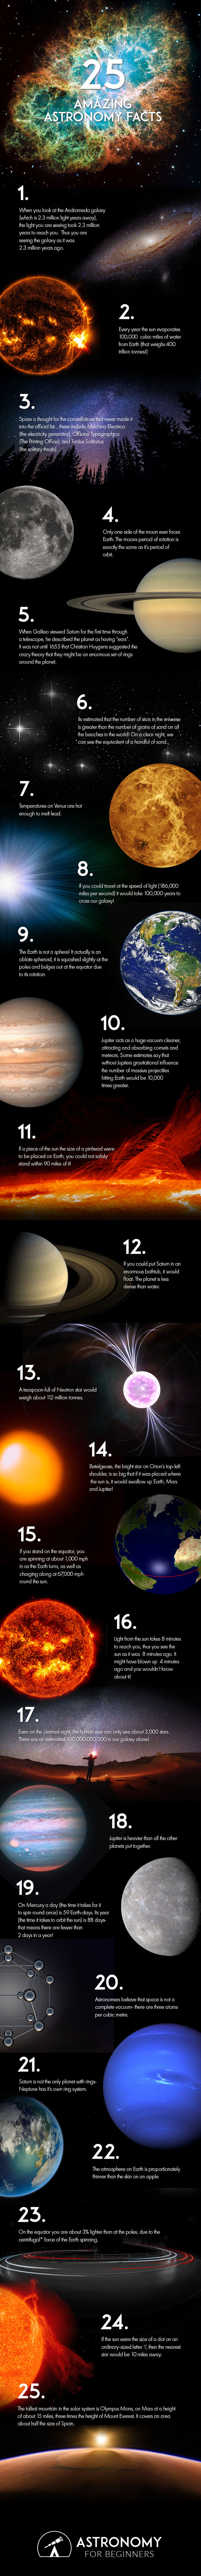 25 Amazing Astronomy Facts